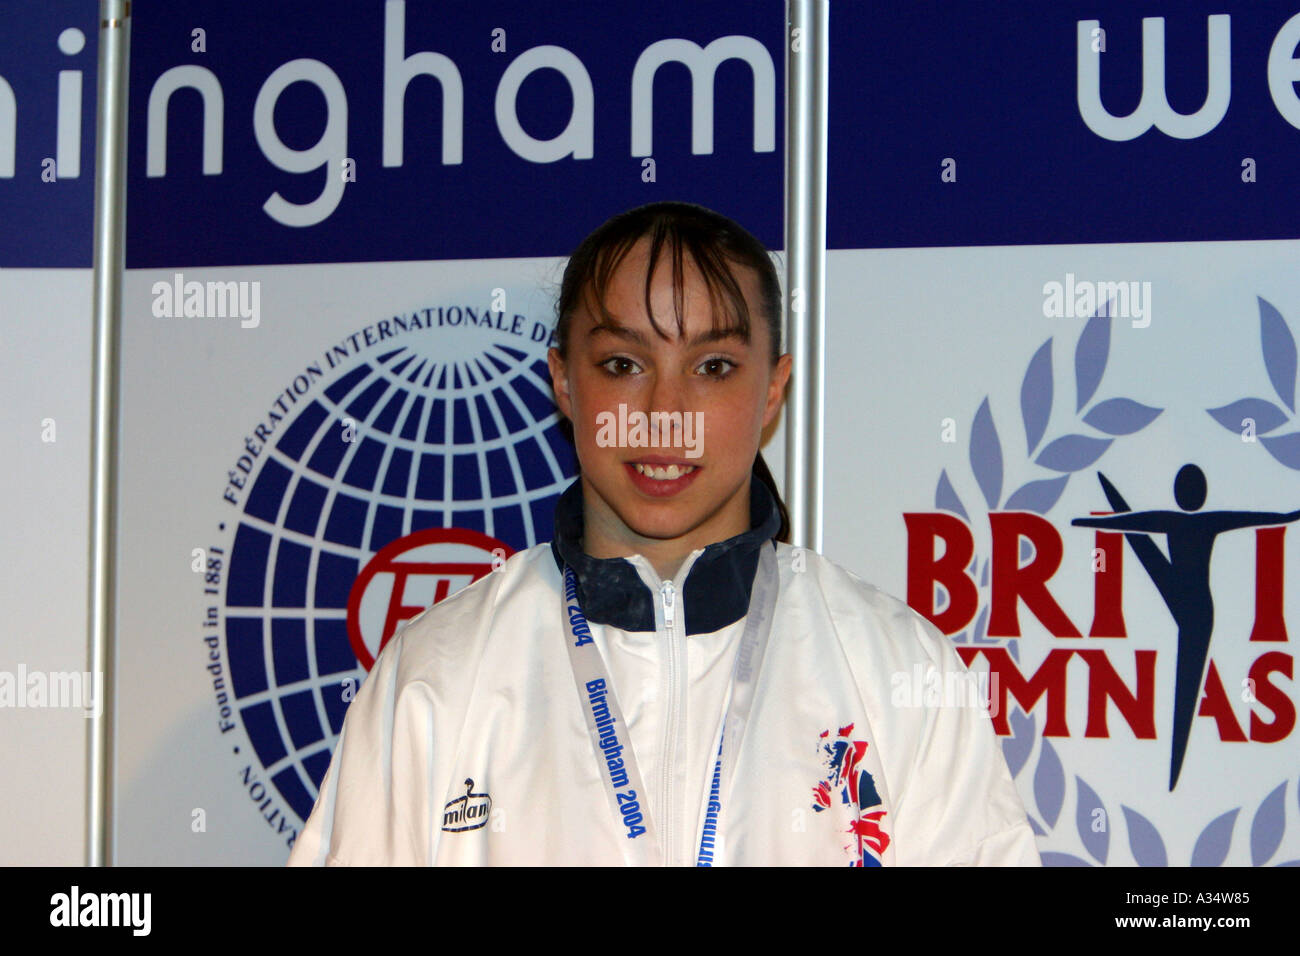 elizabeth tweddle british number one female gymnast Stock Photo